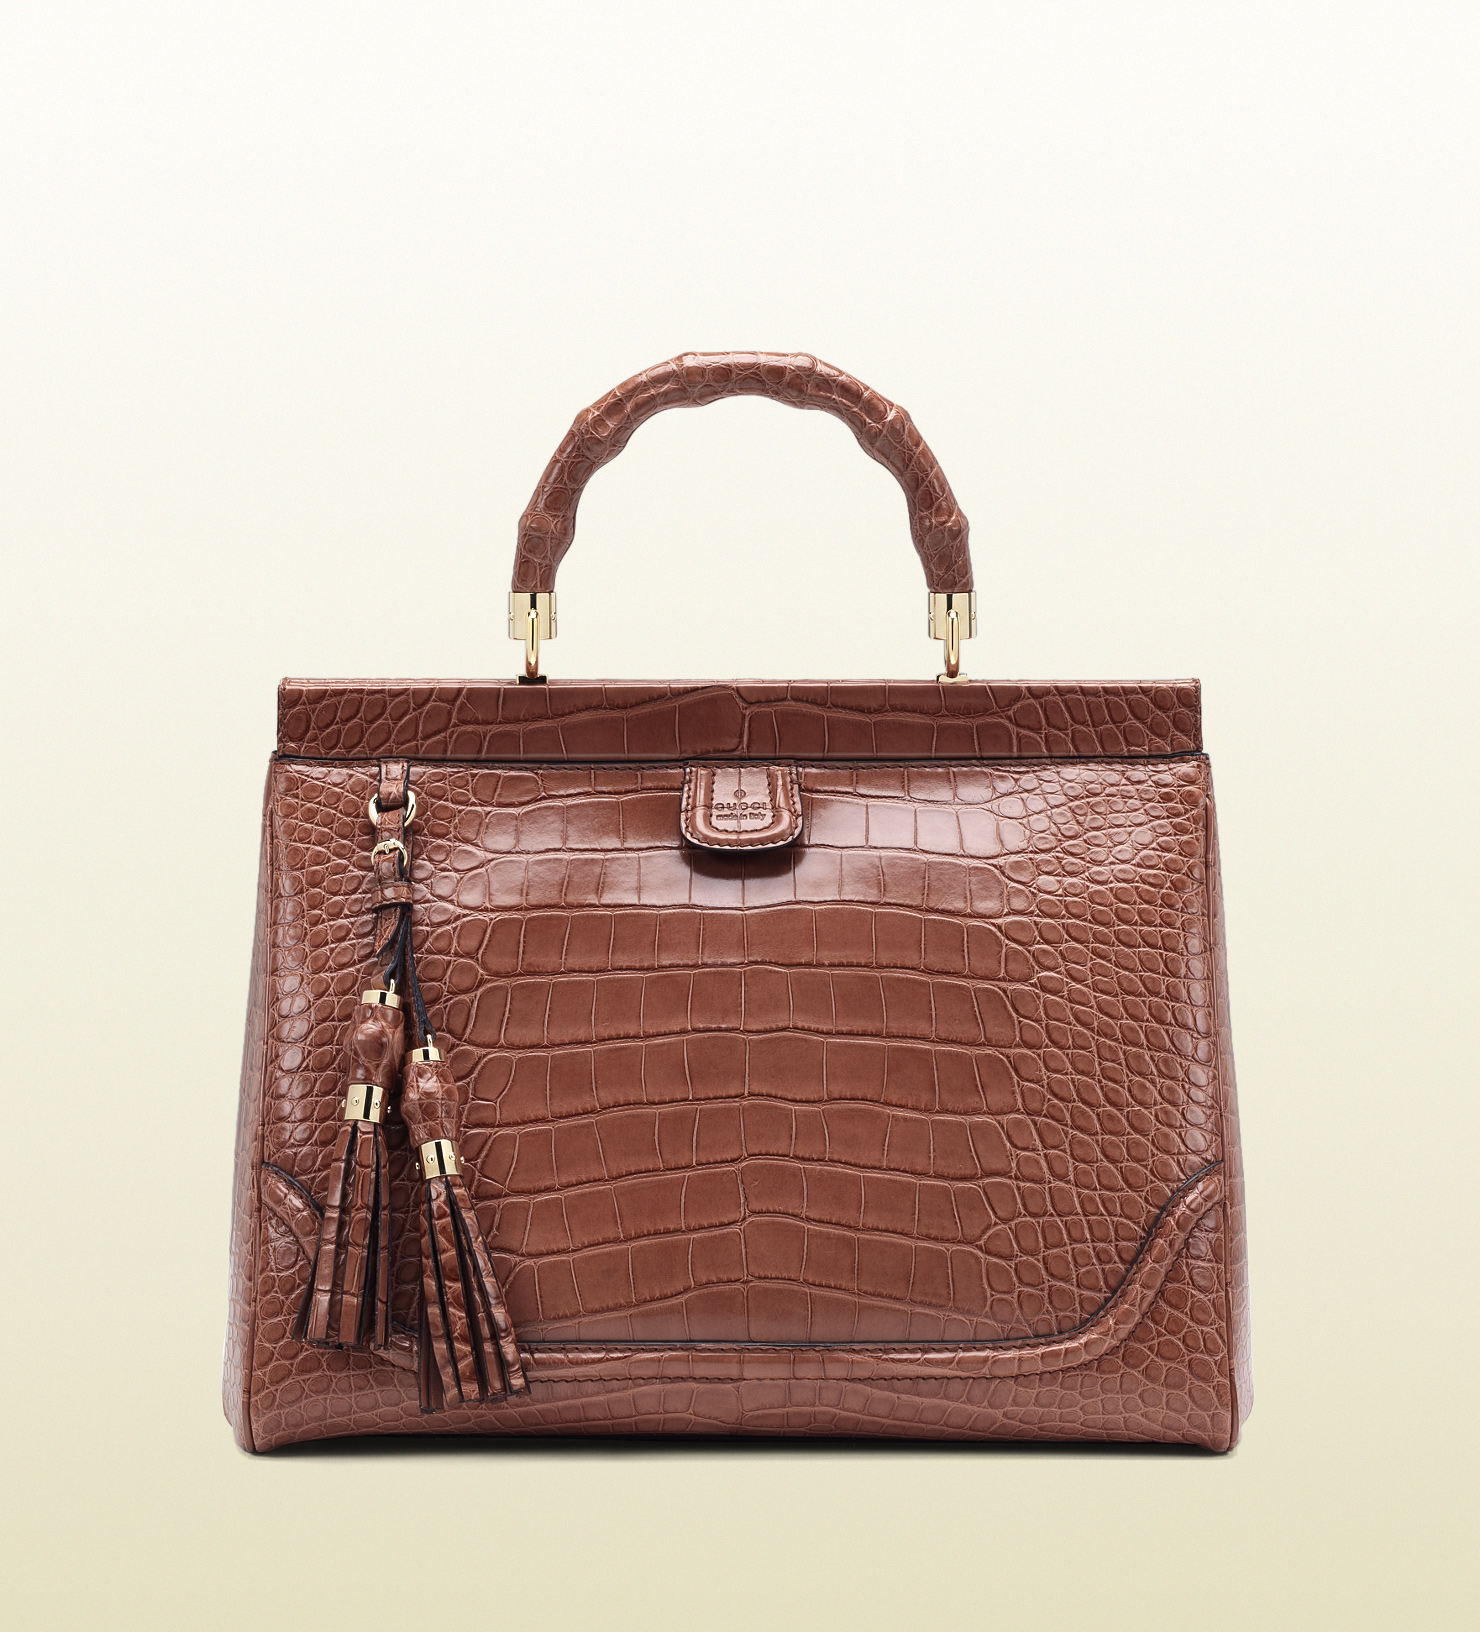 91689dd6a502 Gucci Bold Bamboo Pink Crocodile Top Handle Bag in Brown - Lyst